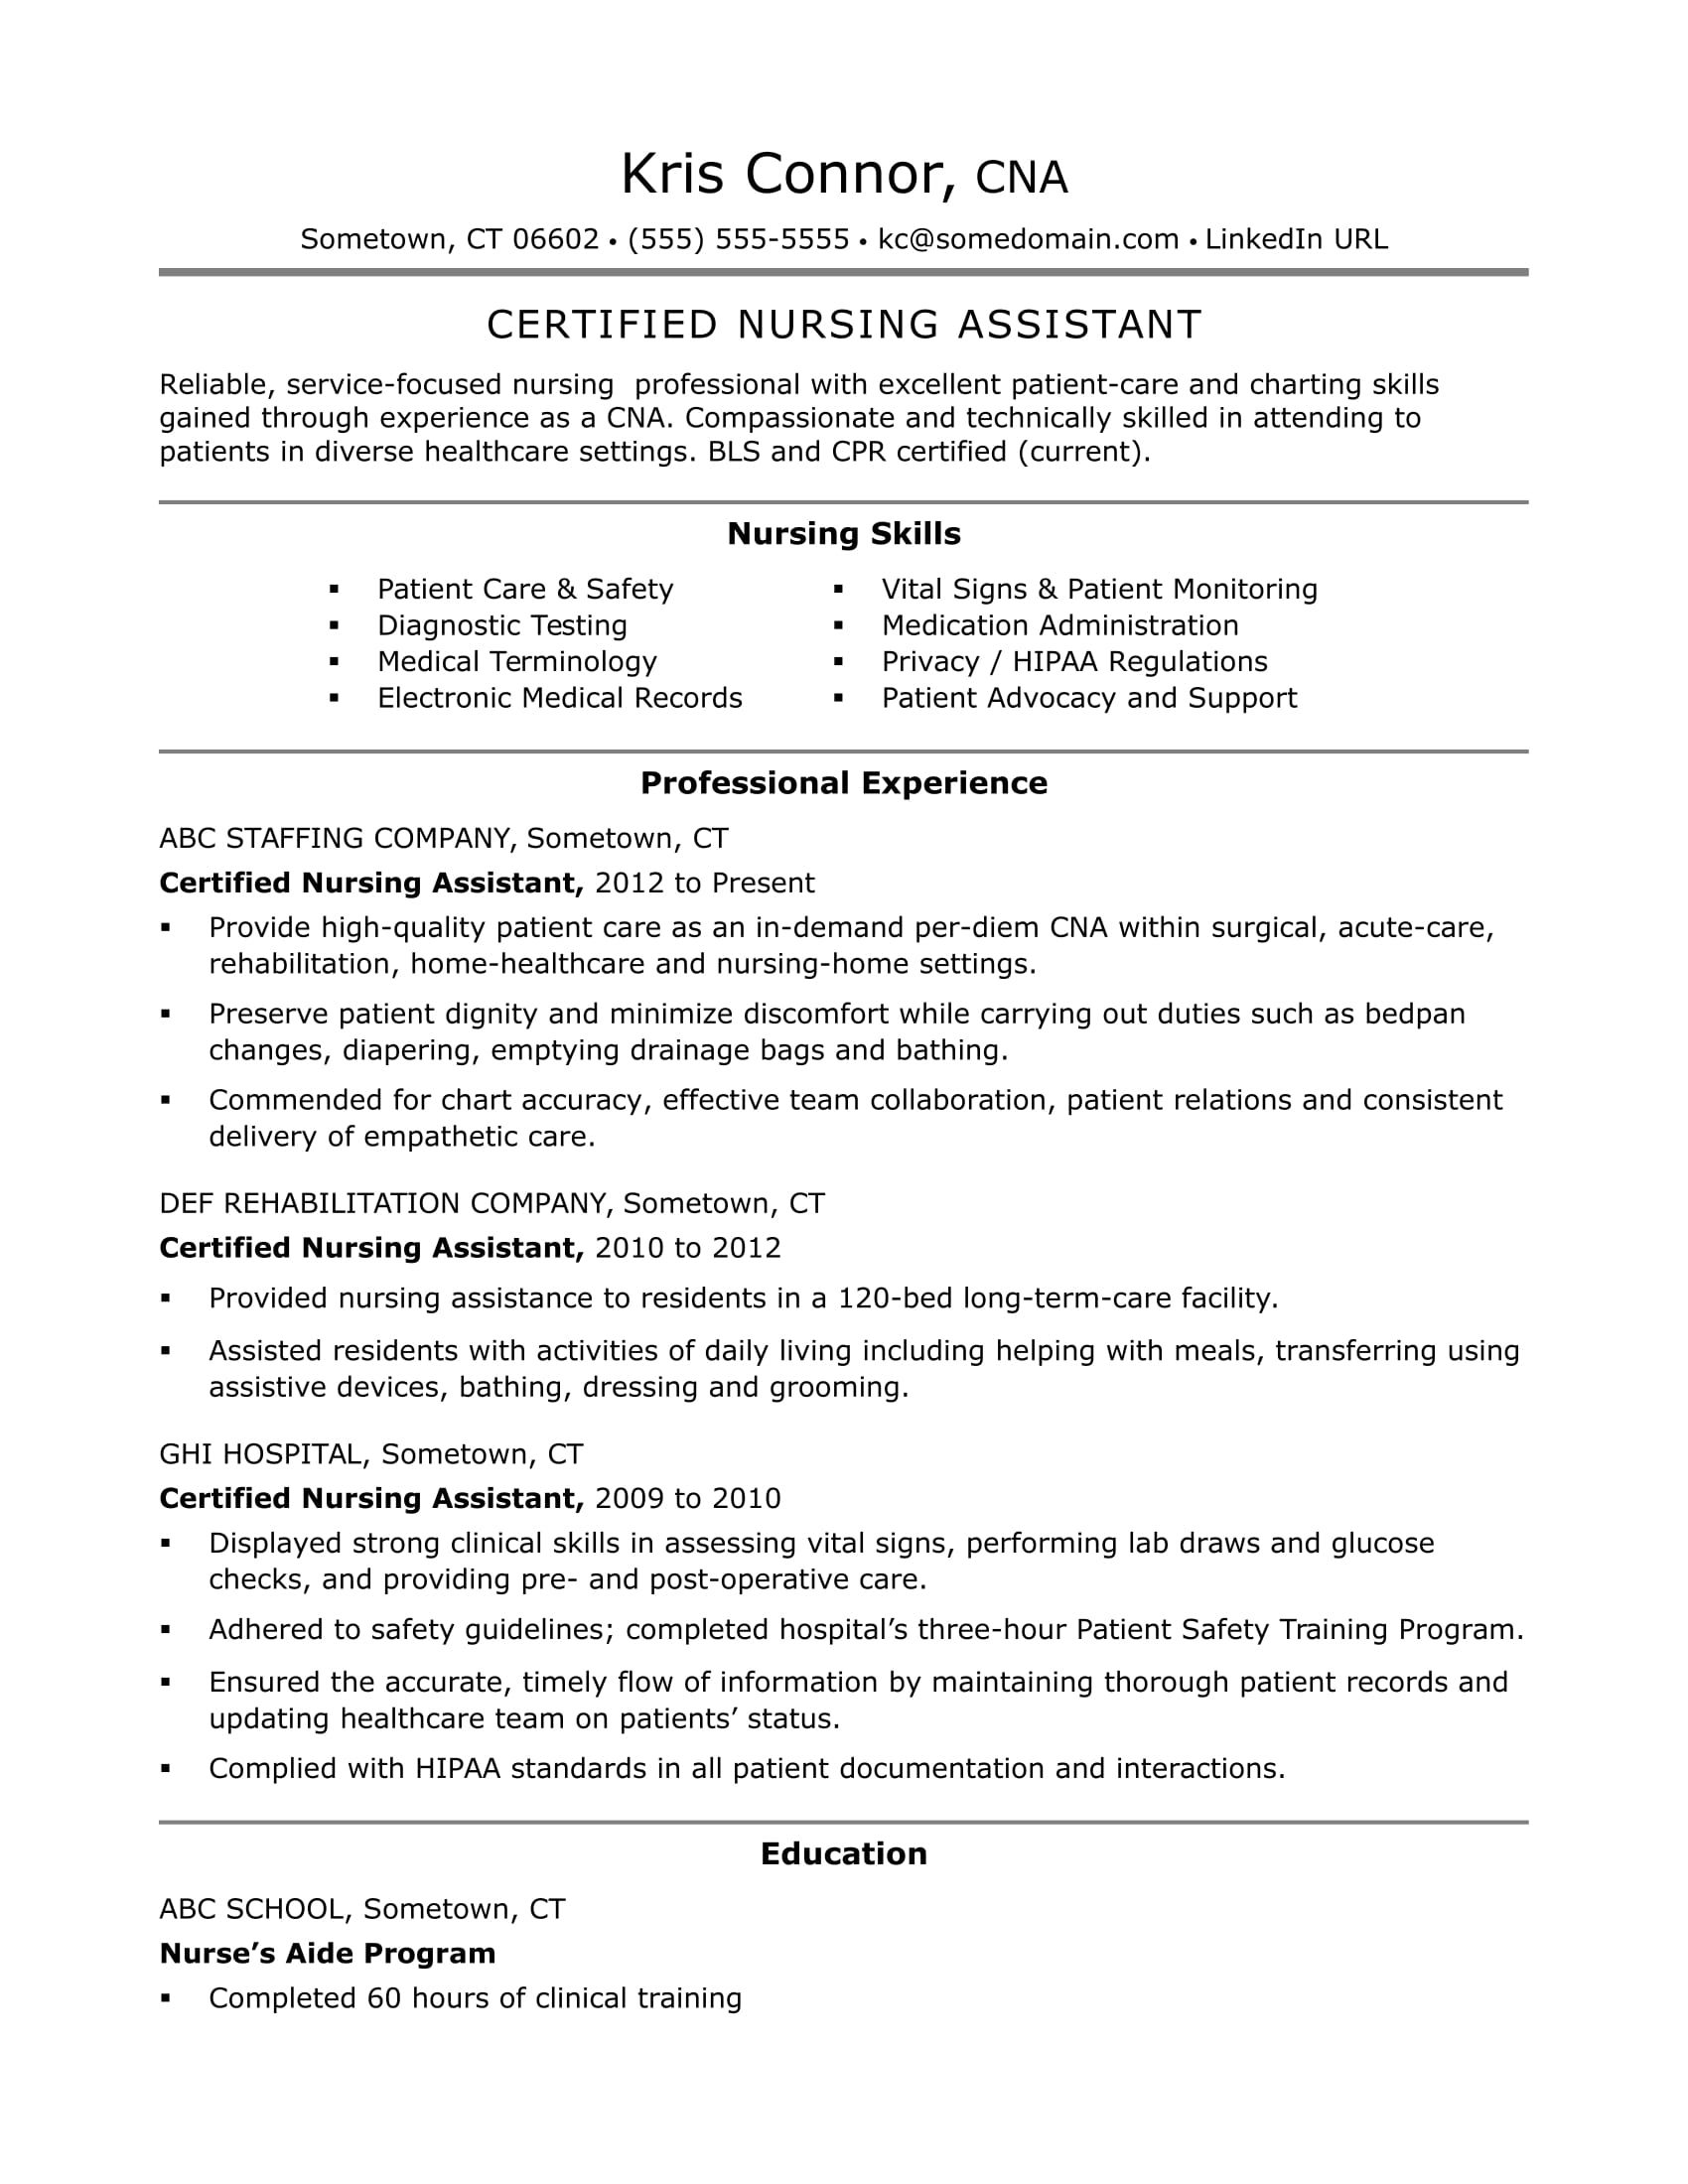 cna resume examples  skills for cnas